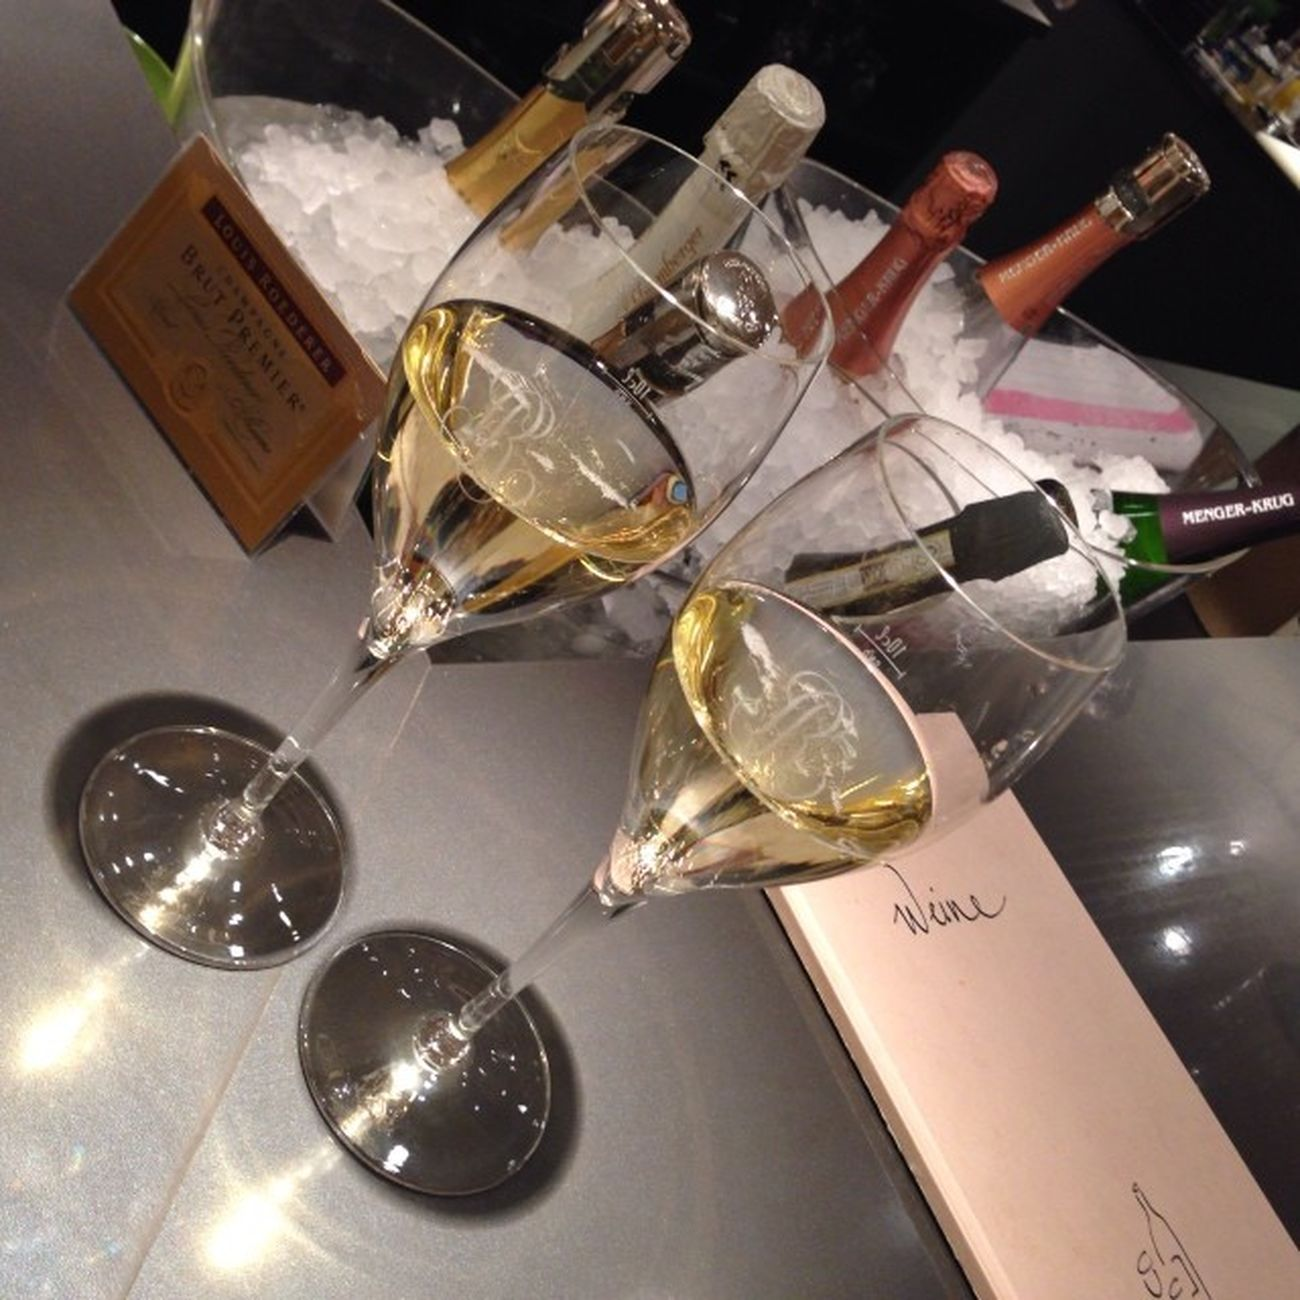 Louis Roederer Vintage 2006, Champagner Bar, Karstadt, Frankfurt am Main, Germamy